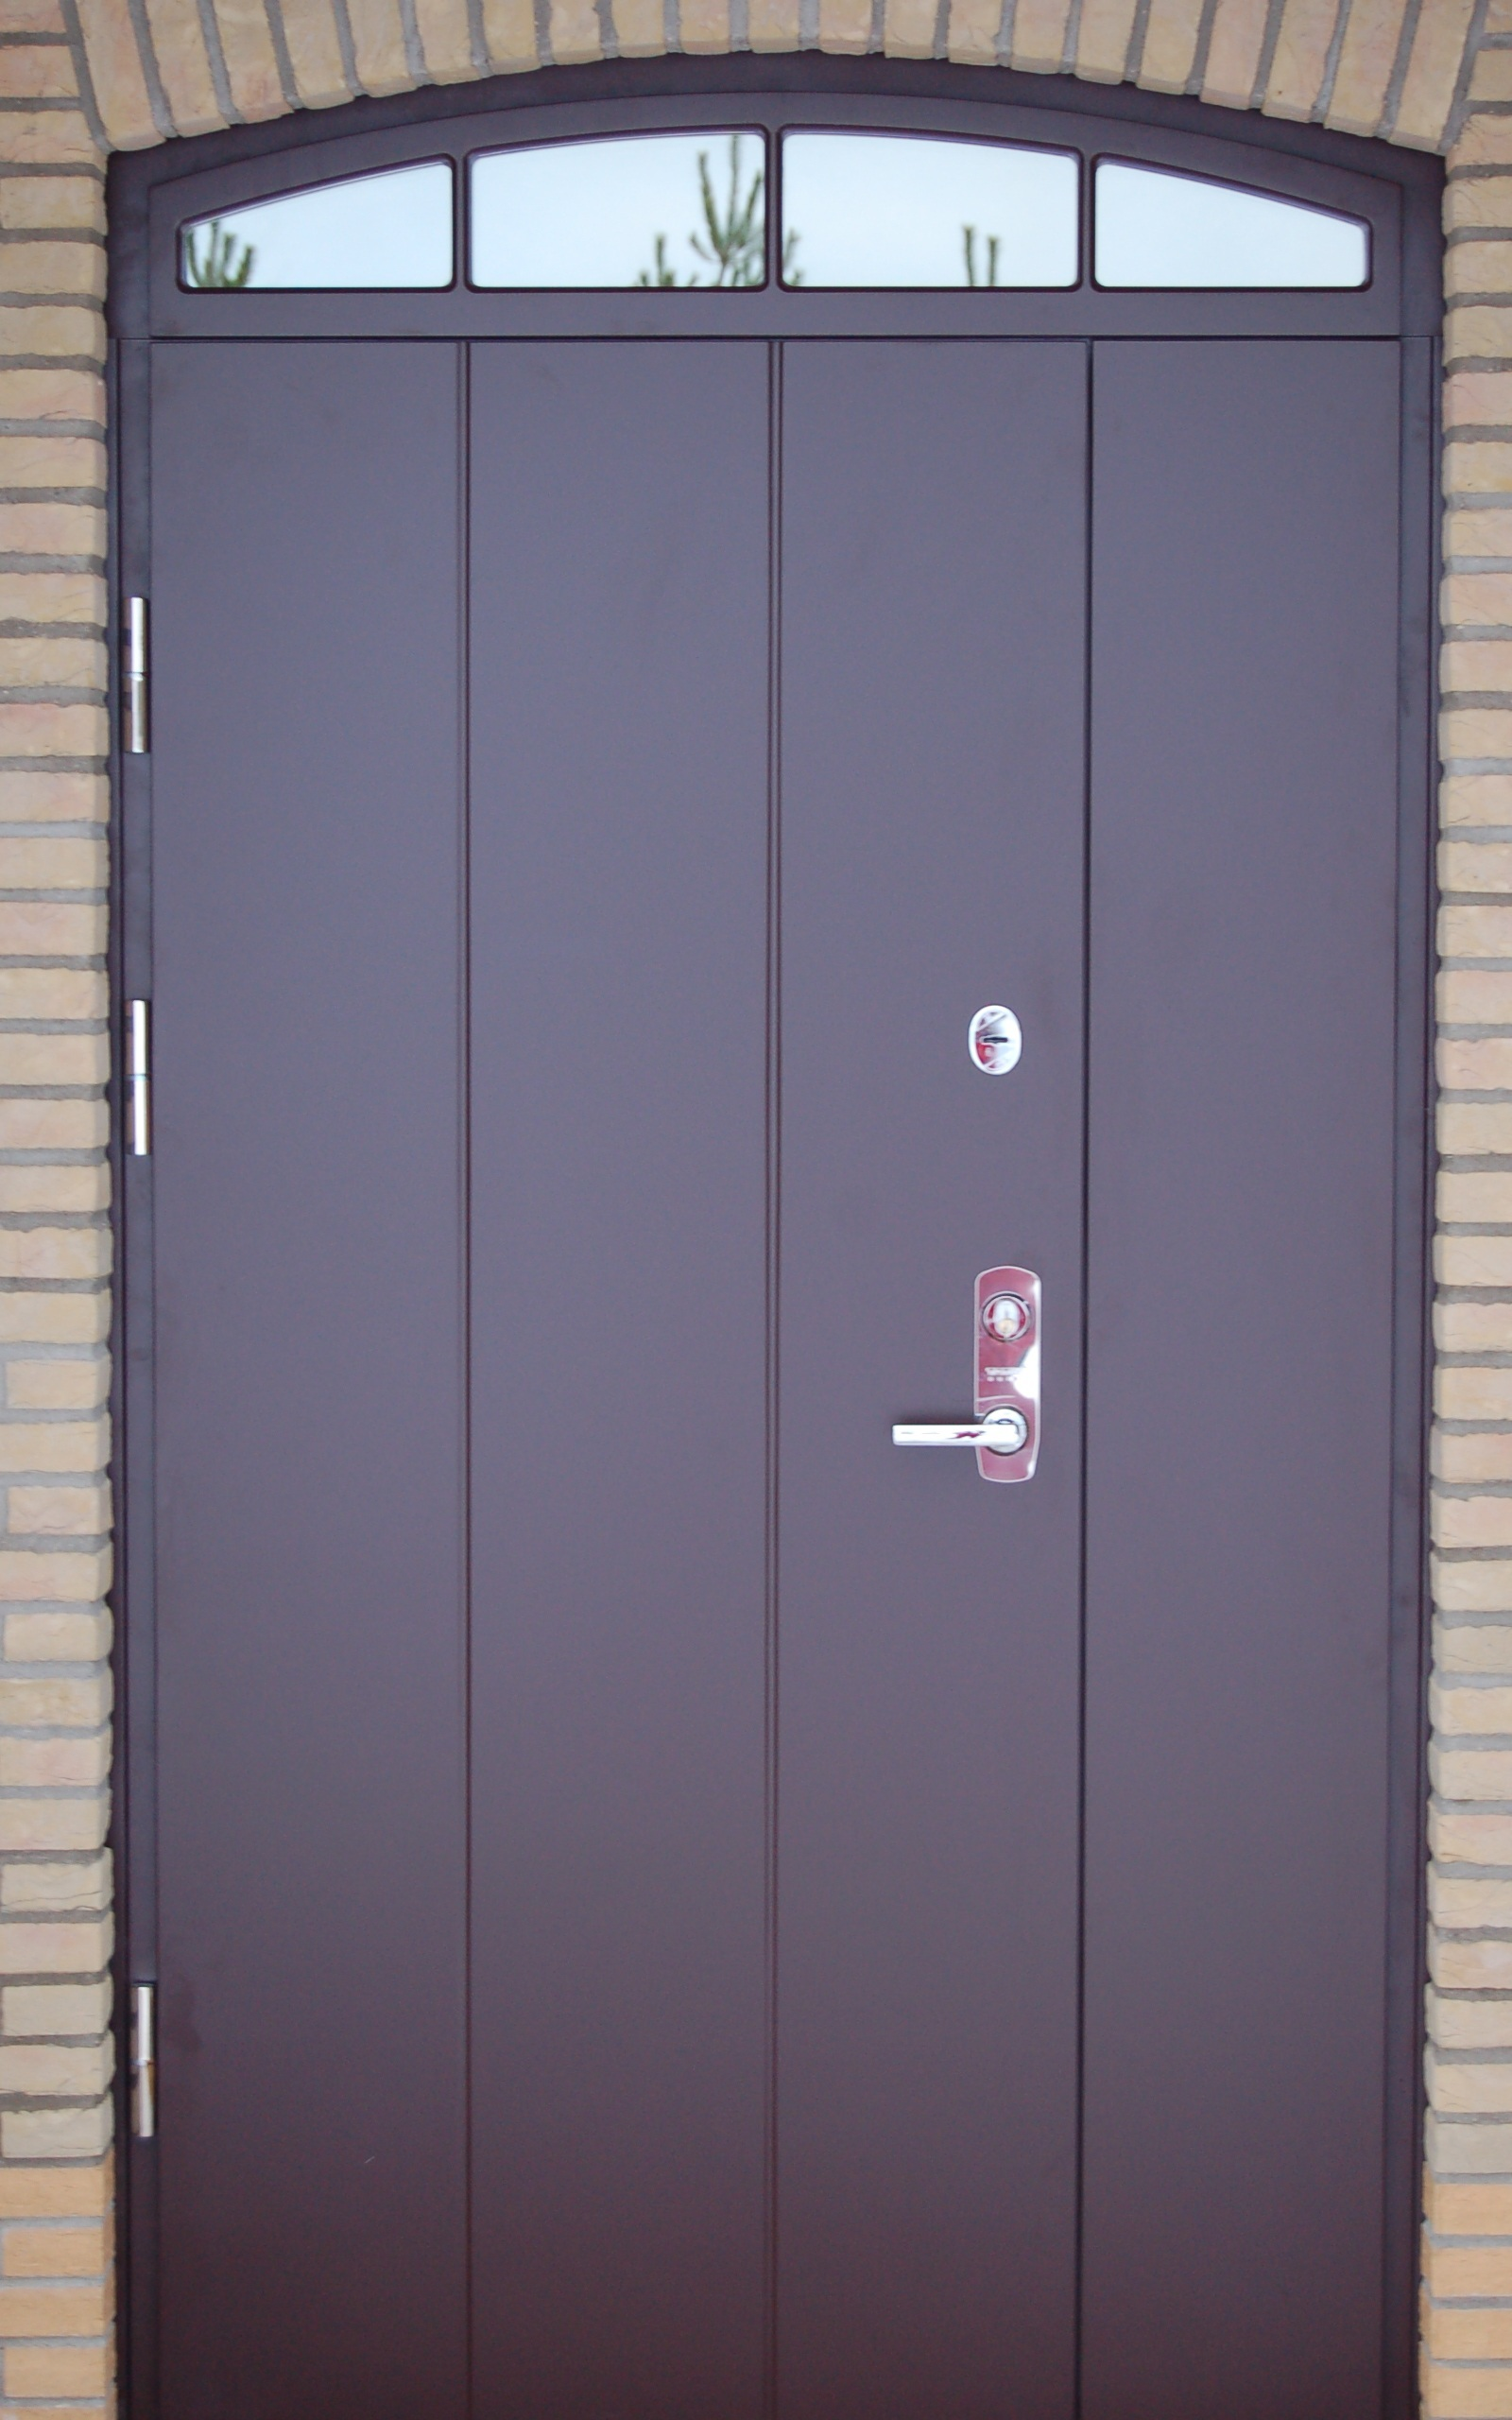 Seciro metal security doors seciro for Metal entry doors